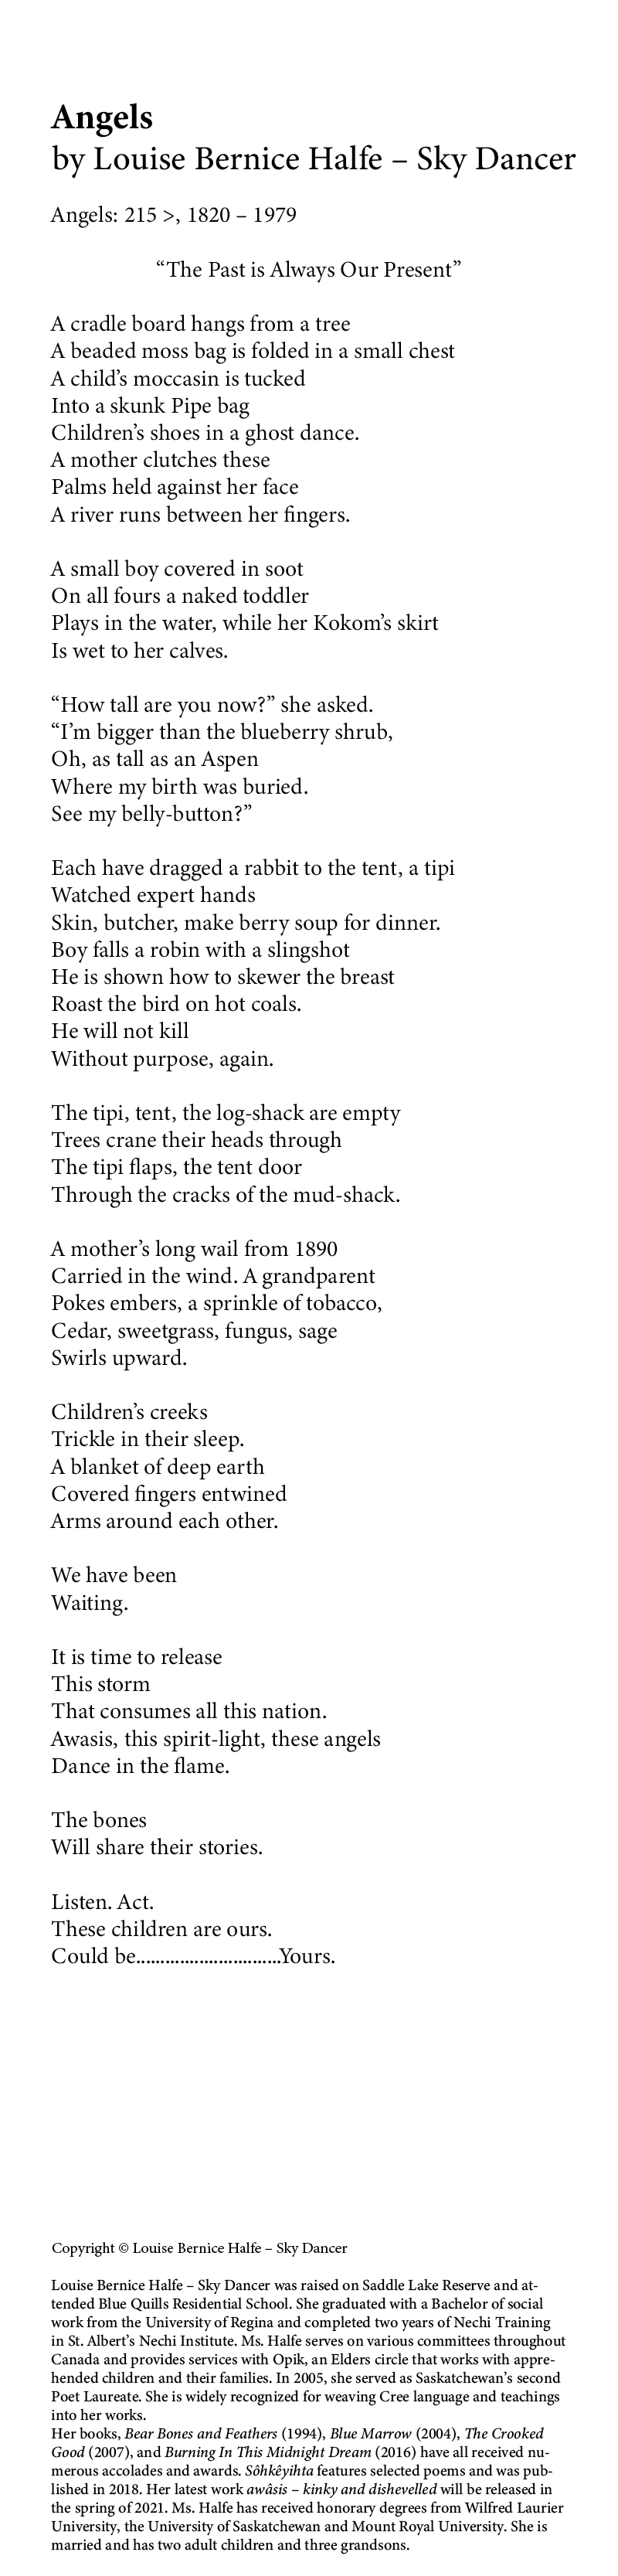 """Poem name: Angels: 215 >, 1820 – 1979 Poet name: Louise Bernice Halfe – Sky Dancer Poem: """"The Past is Always Our Present"""" A cradle board hangs from a tree A beaded moss bag is folded in a small chest A child's moccasin is tucked Into a skunk Pipe bag Children's shoes in a ghost dance. A mother clutches these Palms held against her face A river runs between her fingers. A small boy covered in soot On all fours a naked toddler Plays in the water, while her Kokom's skirt Is wet to her calves. """"How tall are you now?"""" she asked. """"I'm bigger than the blueberry shrub, Oh, as tall as an Aspen Where my birth was buried. See my belly-button?"""" Each have dragged a rabbit to the tent, a tipi Watched expert hands Skin, butcher, make berry soup for dinner. Boy falls a robin with a slingshot He is shown how to skewer the breast Roast the bird on hot coals. He will not kill Without purpose, again. The tipi, tent, the log-shack are empty Trees crane their heads through The tipi flaps, the tent door Through the cracks of the mud-shack. A mother's long wail from 1890 Carried in the wind. A grandparent Pokes embers, a sprinkle of tobacco, Cedar, sweetgrass, fungus, sage Swirls upward. Children's creeks Trickle in their sleep. A blanket of deep earth Covered fingers entwined Arms around each other. We have been Waiting. It is time to release This storm That consumes all this nation. Awasis, this spirit-light, these angels Dance in the flame. The bones Will share their stories. Listen. Act. These children are ours. Could be..............................Yours. End of poem. Credits: Copyright © Louise Bernice Halfe – Sky Dancer Louise Bernice Halfe – Sky Dancer was raised on Saddle Lake Reserve and attended Blue Quills Residential School. She graduated with a Bachelor of social work from the University of Regina and completed two years of Nechi Training in St. Albert's Nechi Institute. Ms. Halfe serves on various committees throughout Canada and provides services with Opik, an Elders circle"""